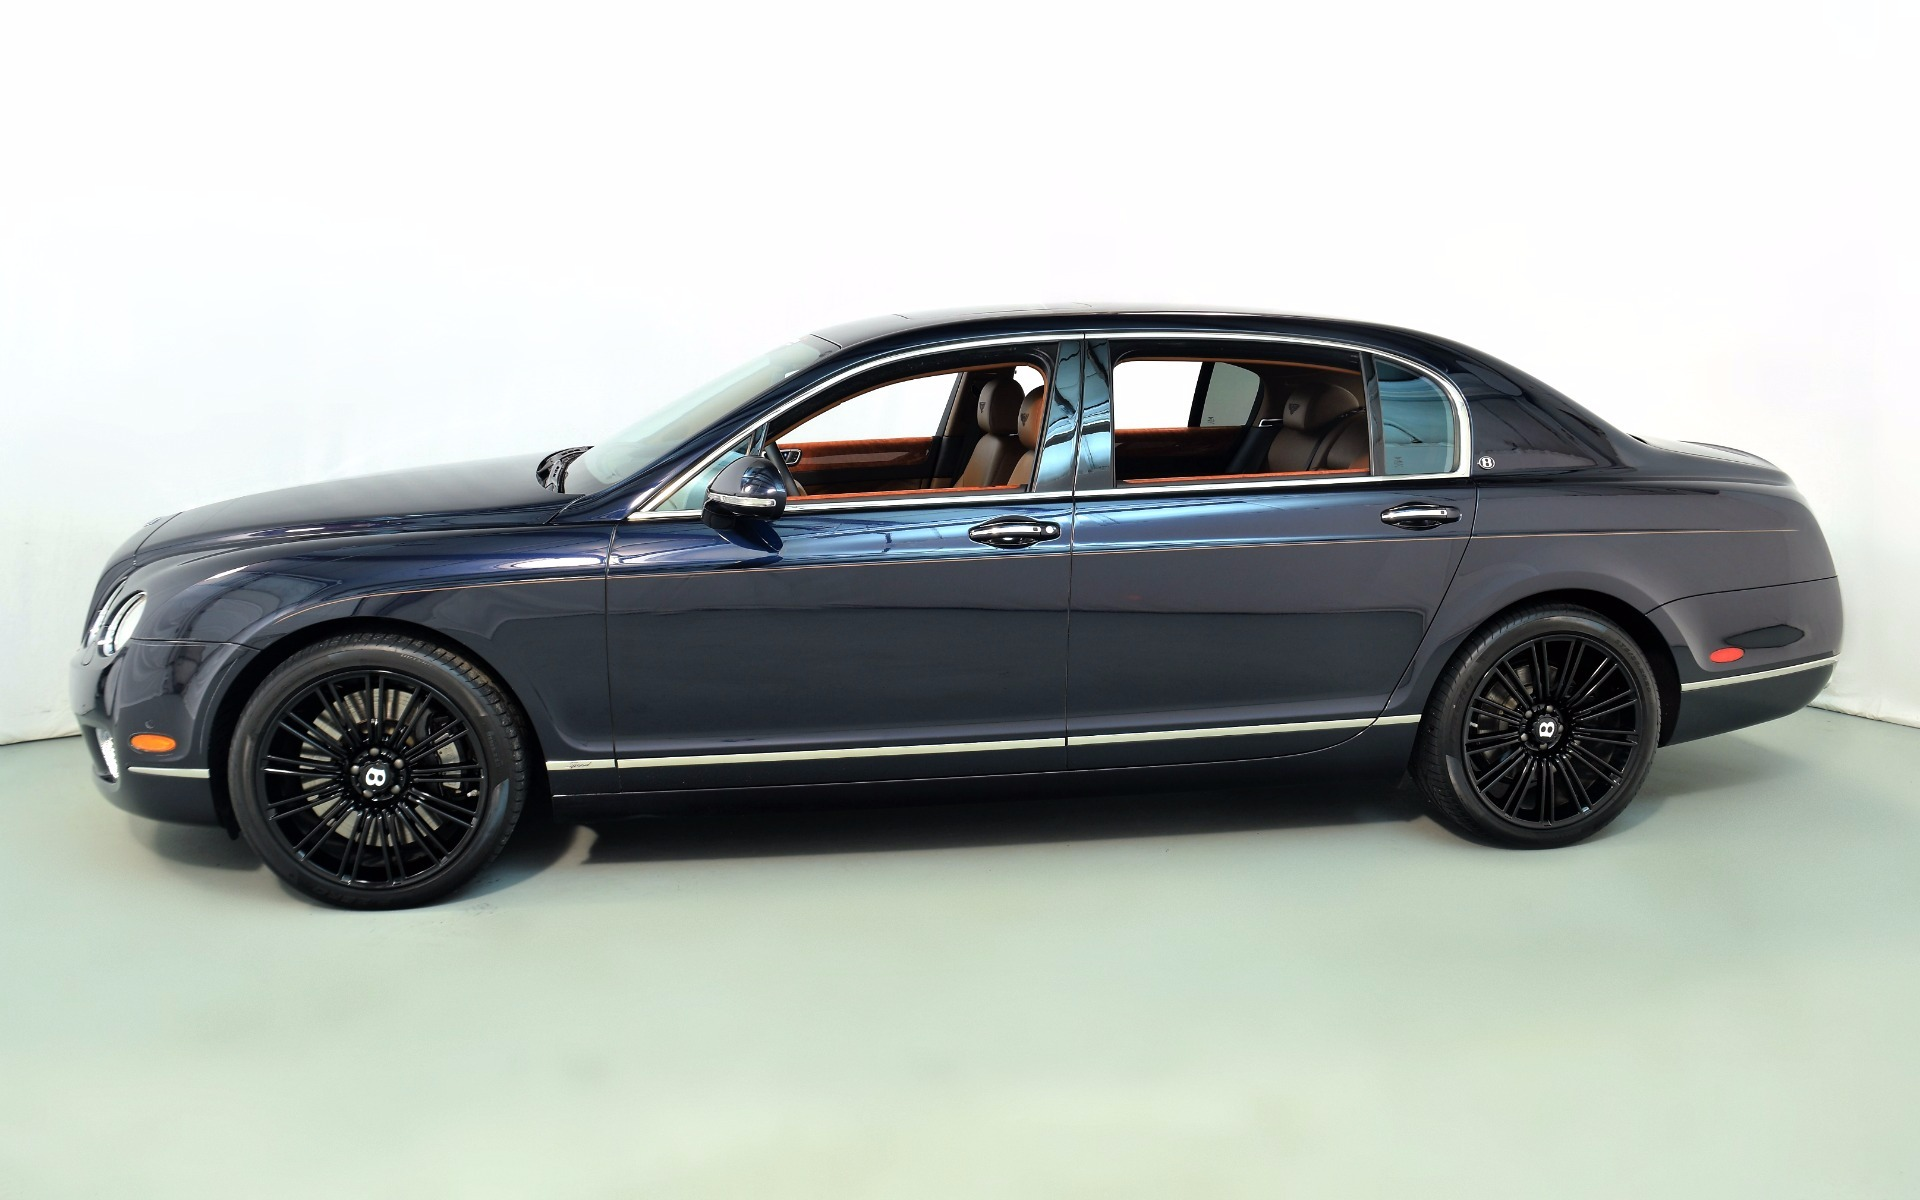 2012 bentley continental flying spur speed for sale in norwell ma 075105 mclaren boston. Black Bedroom Furniture Sets. Home Design Ideas